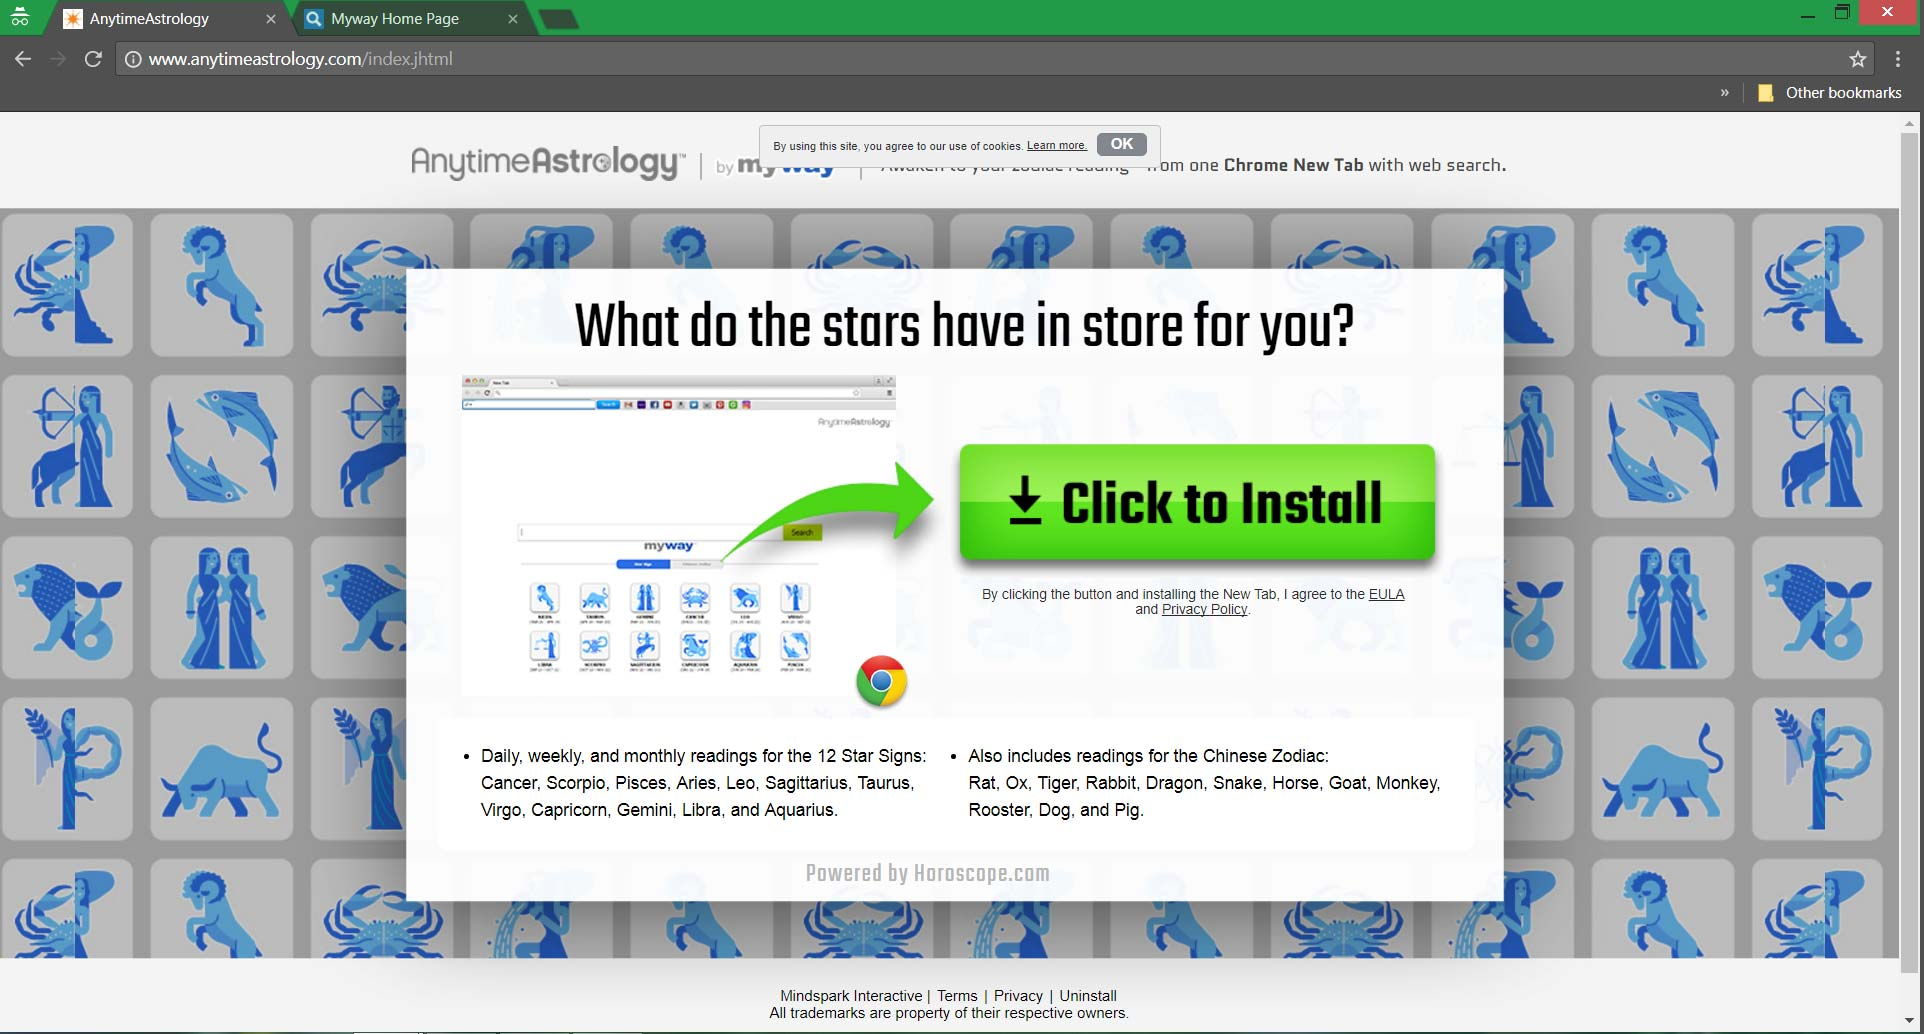 anytimeastrology.com browser redirect homepage sensorstechforum